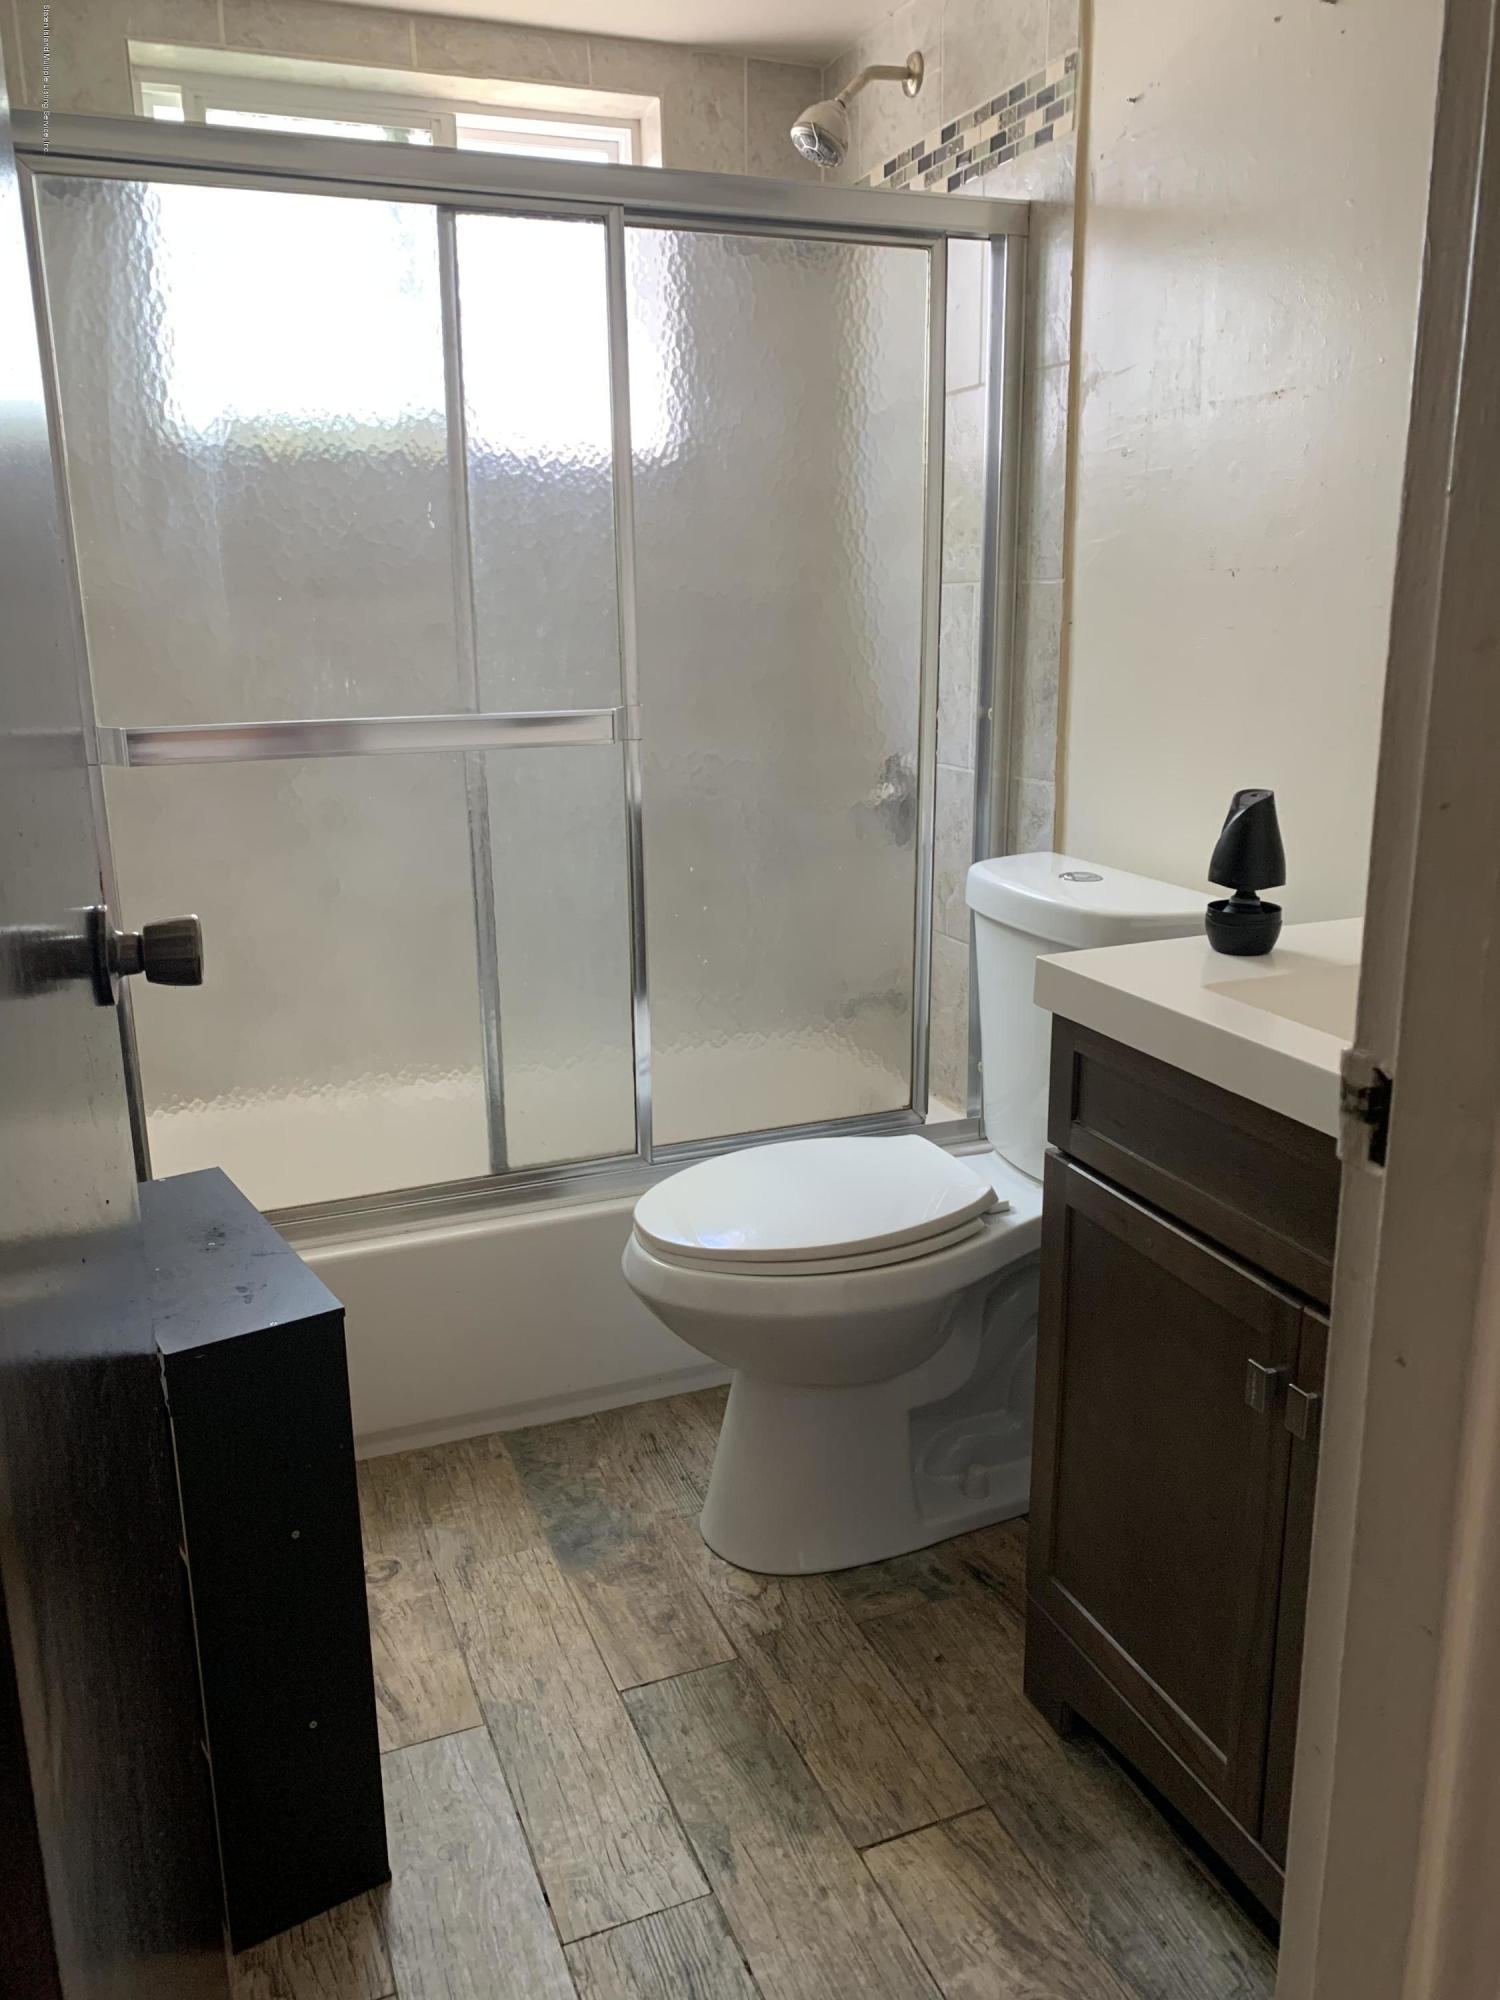 102 Grayson Street,Staten Island,New York,10306,United States,2 Bedrooms Bedrooms,5 Rooms Rooms,1 BathroomBathrooms,Res-Rental,Grayson,1129366